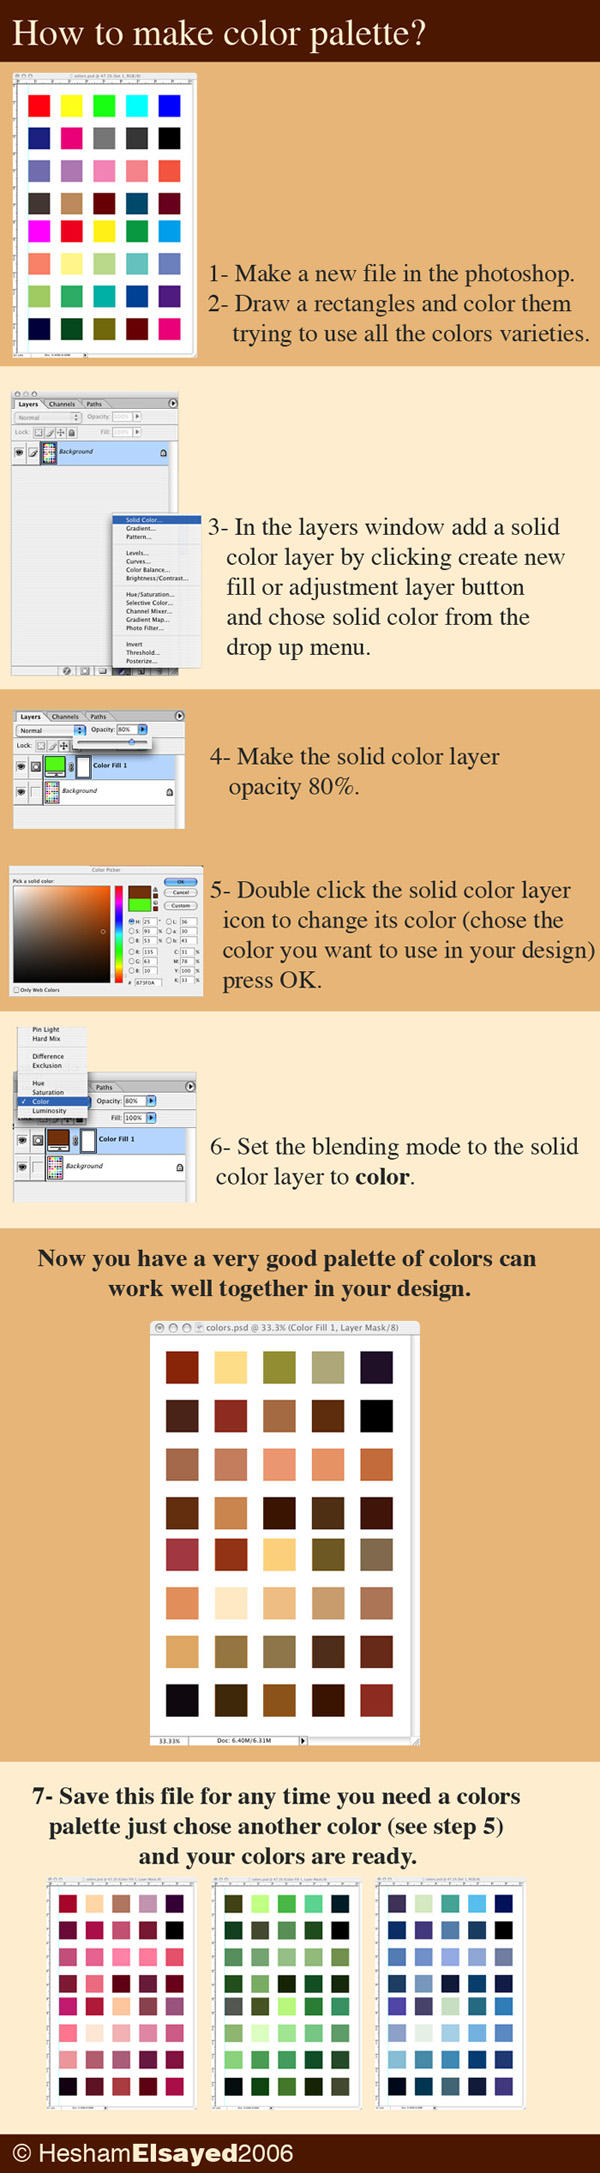 How to make colors palette? by Mash11